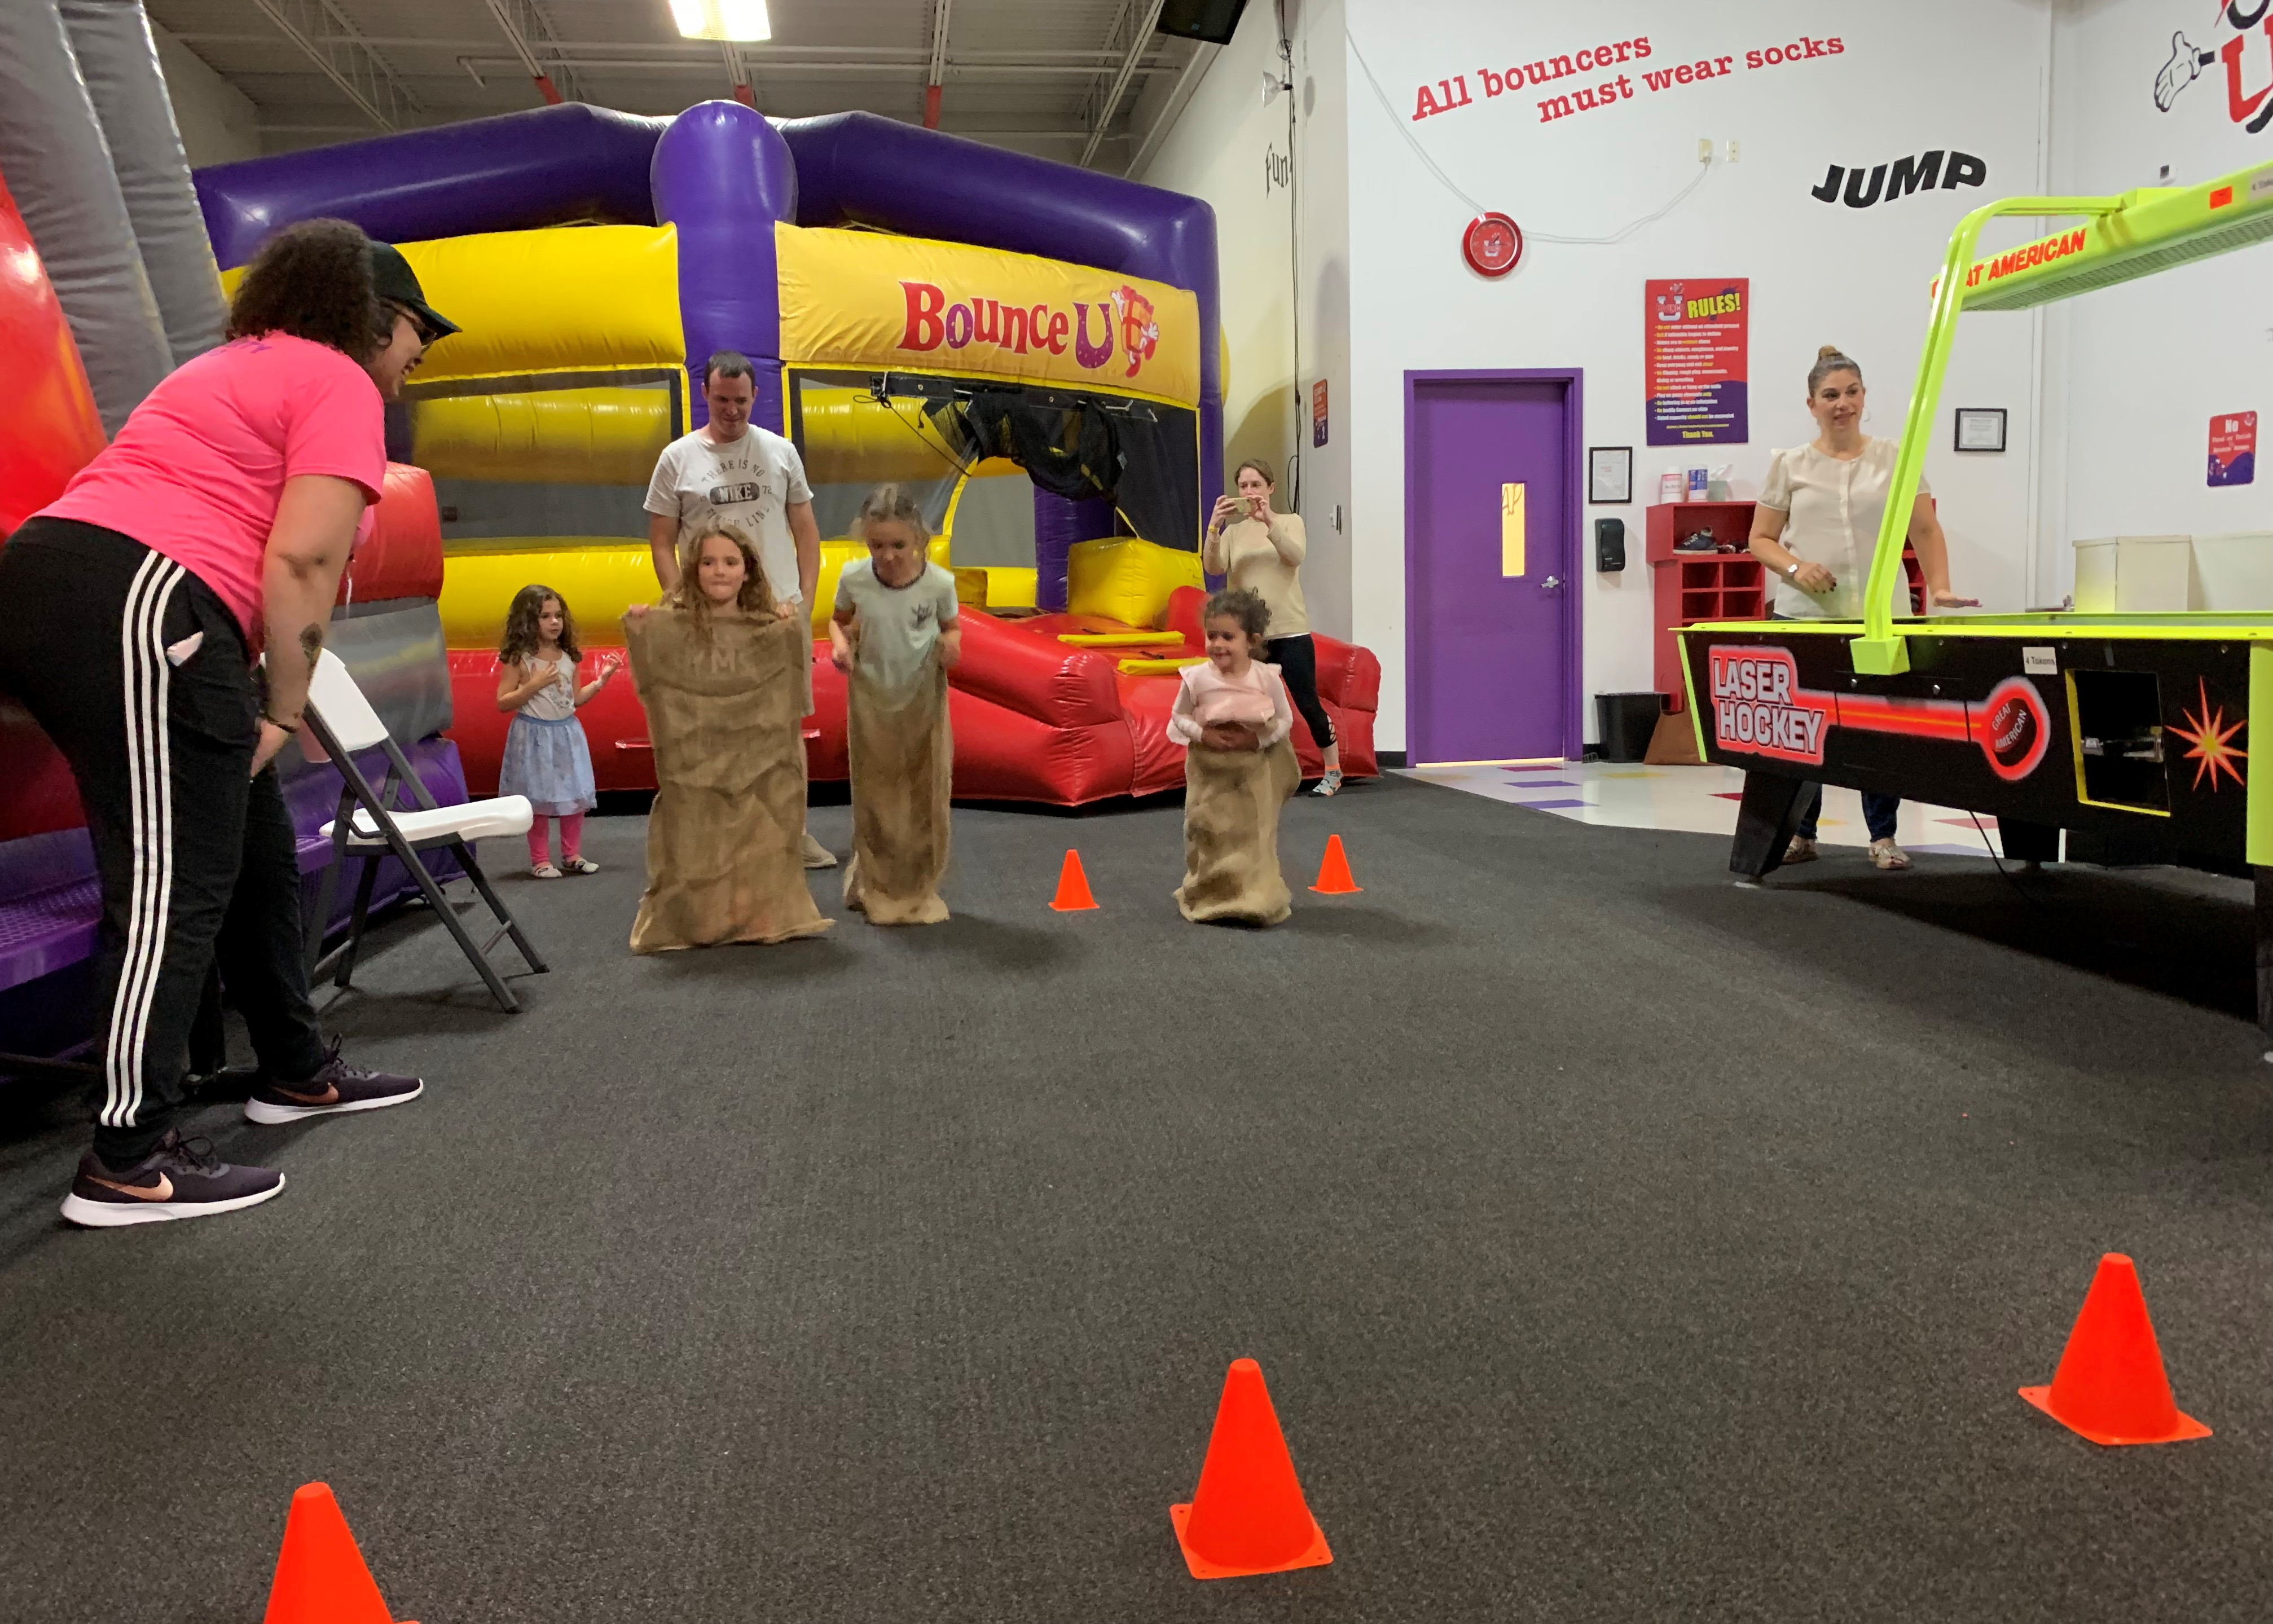 BounceU birthday party staff directing potato sack races with kids in a private party.